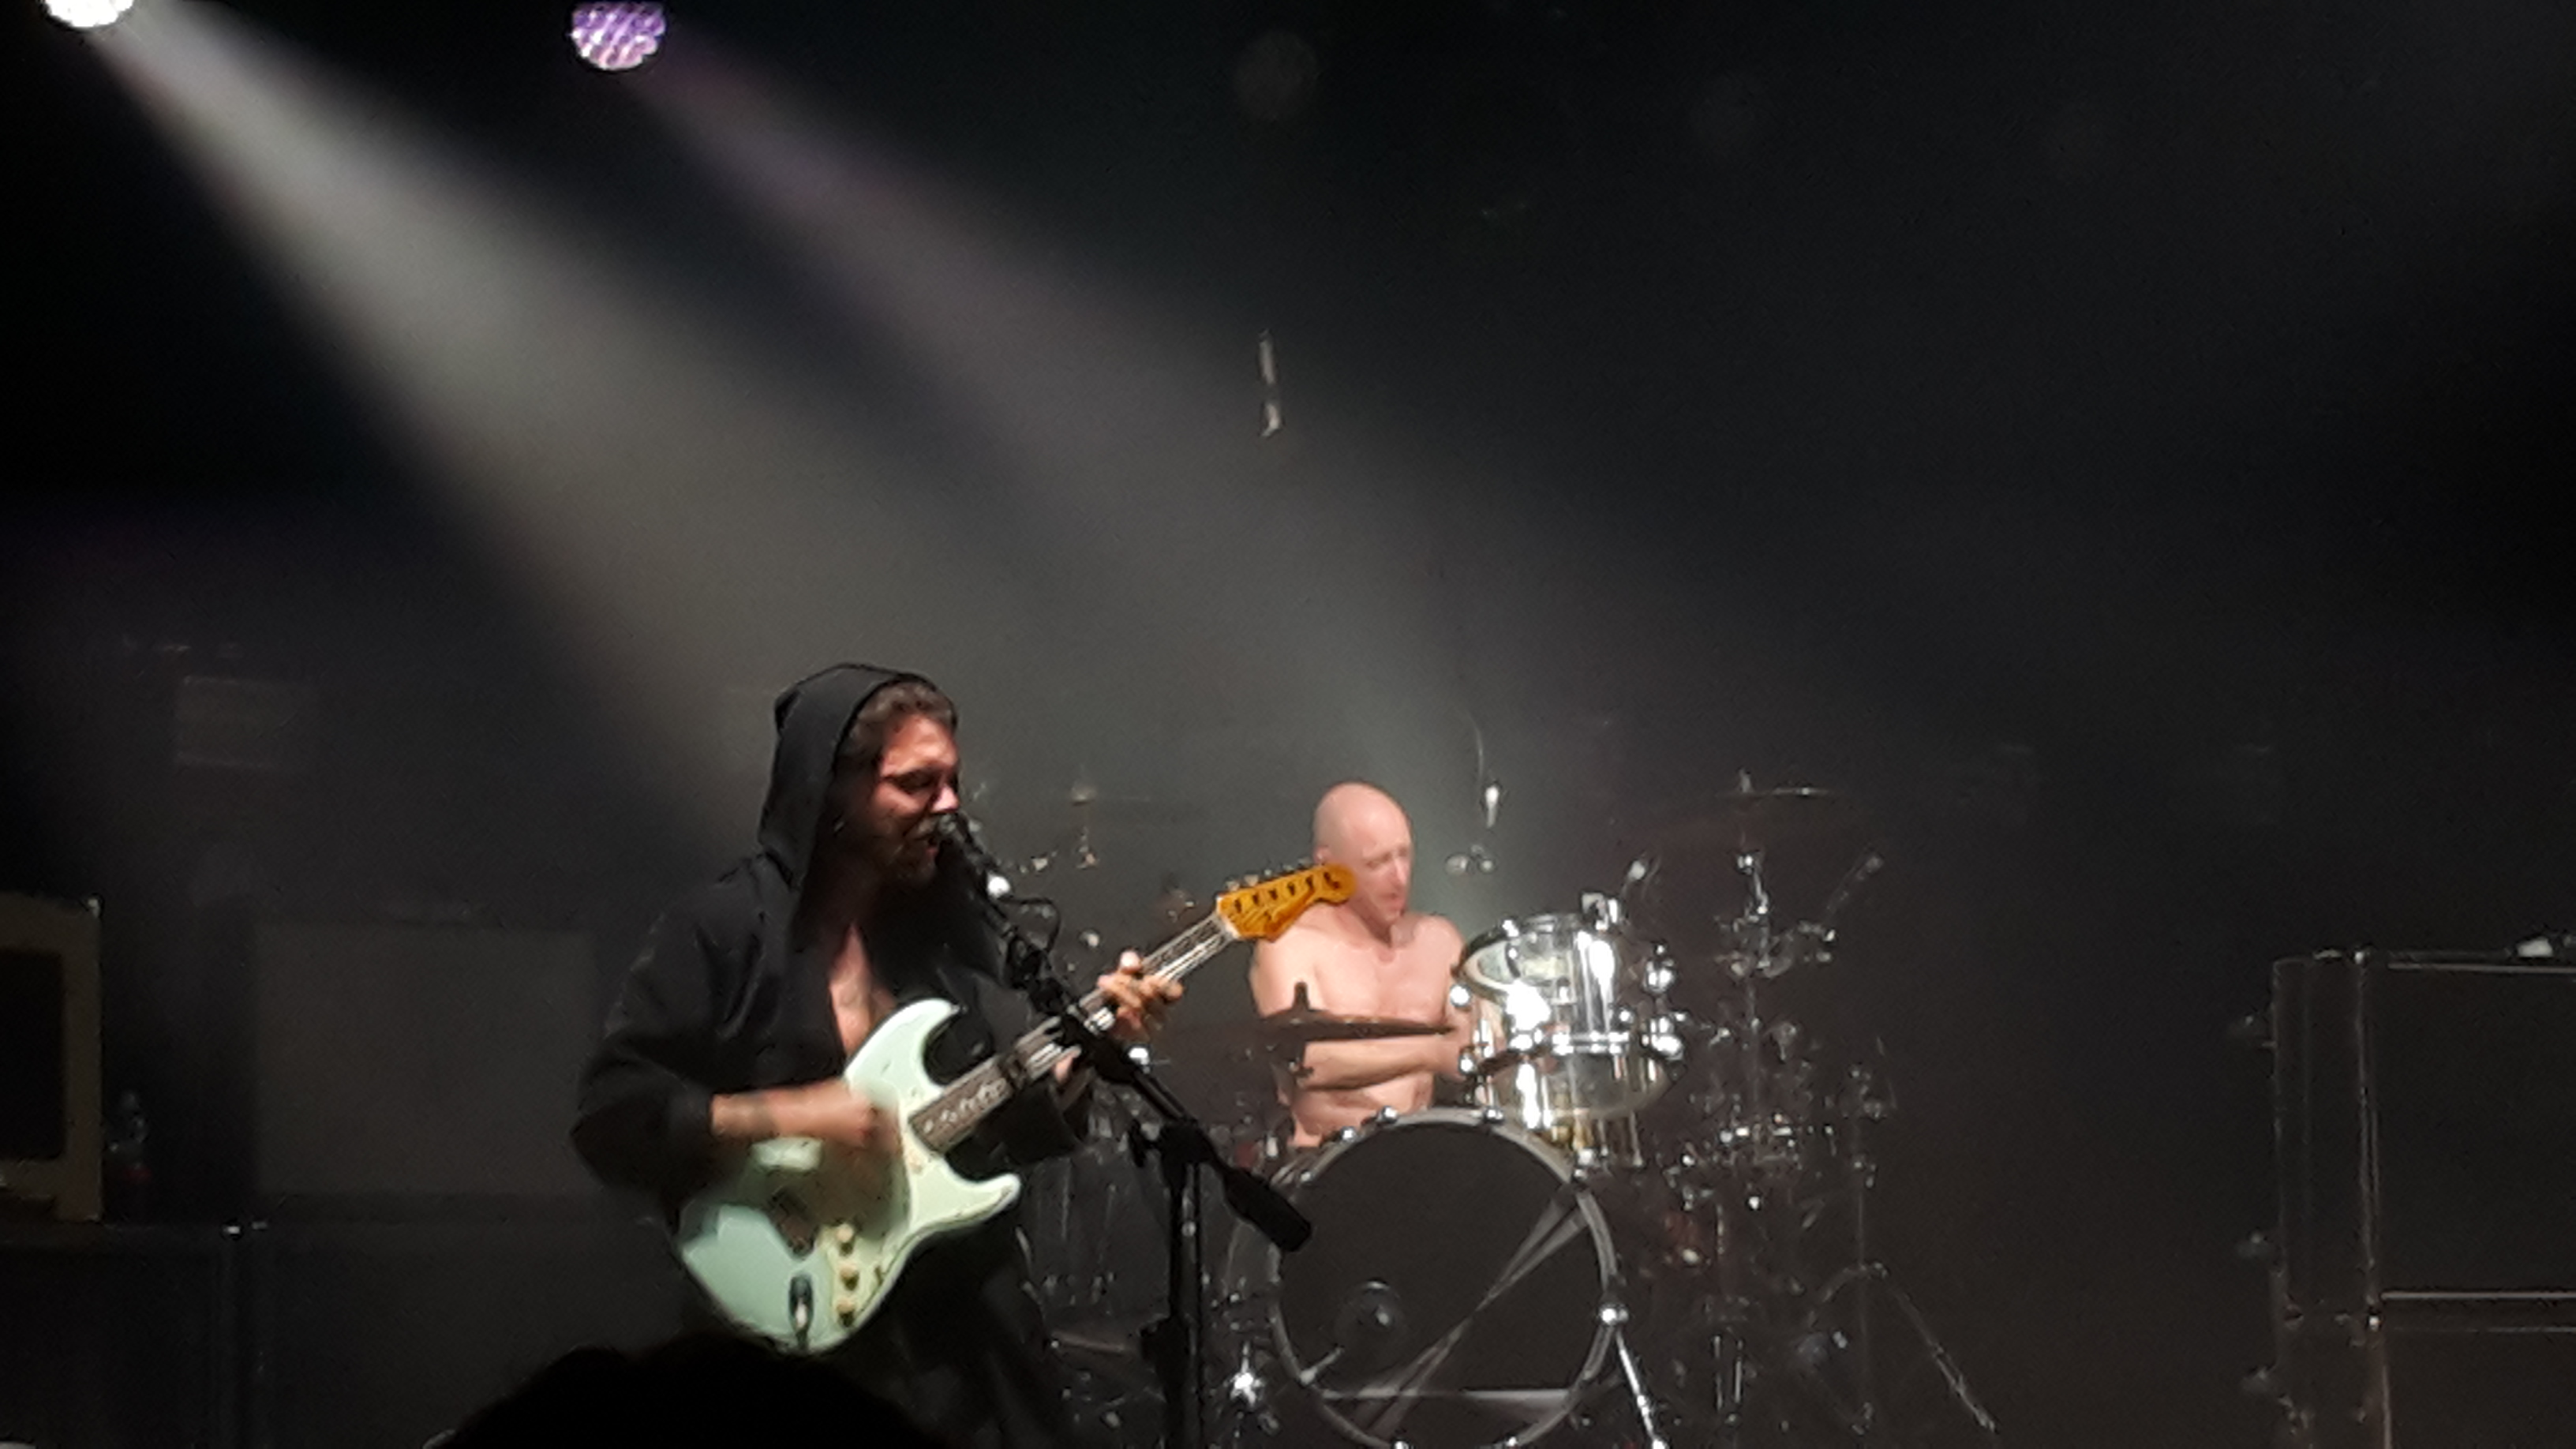 Biffy Clyro Firenze 3